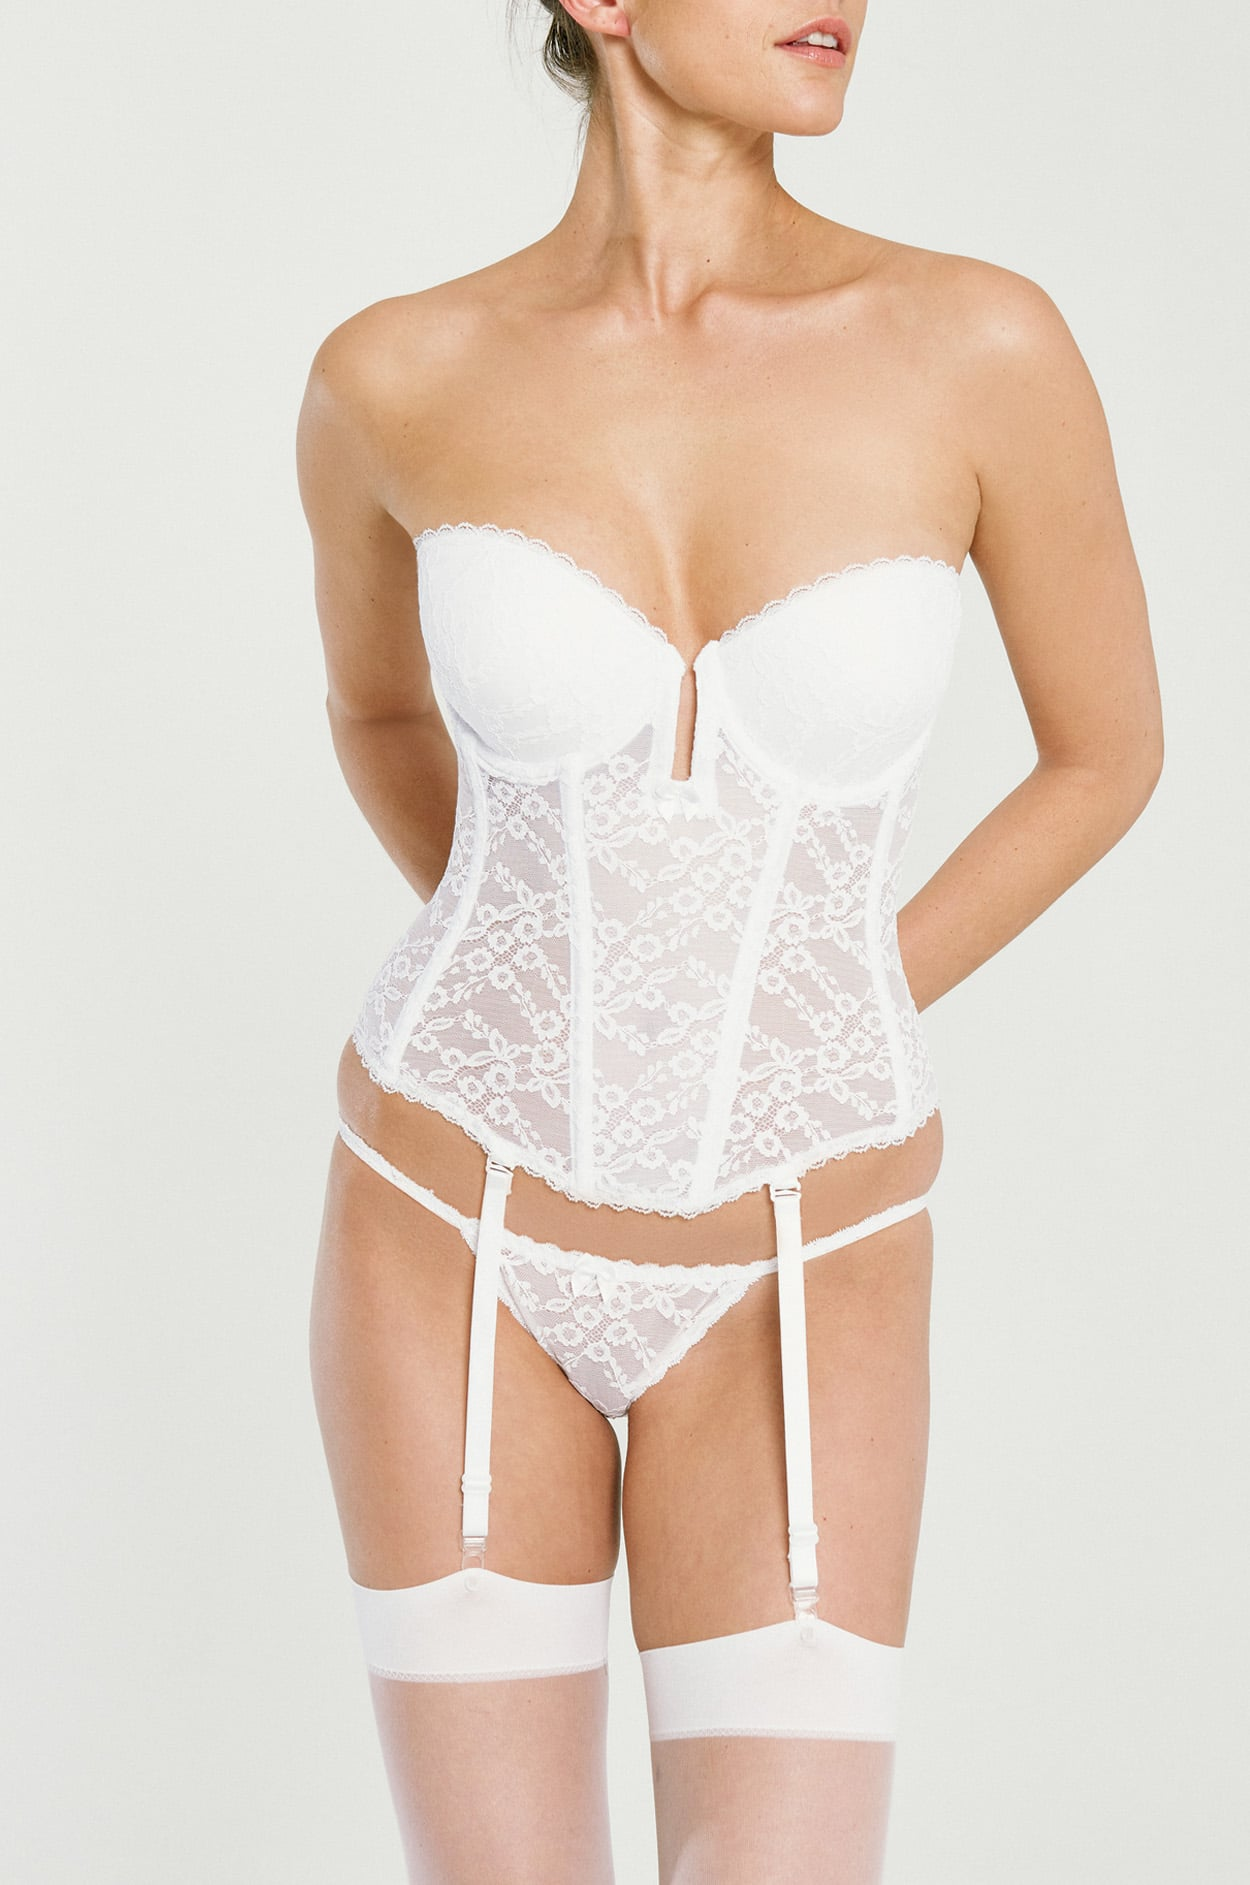 1824ce4d6c59c Plunge Bustier - Lace Shapewear, Best Push-up Waist Cinching Corset